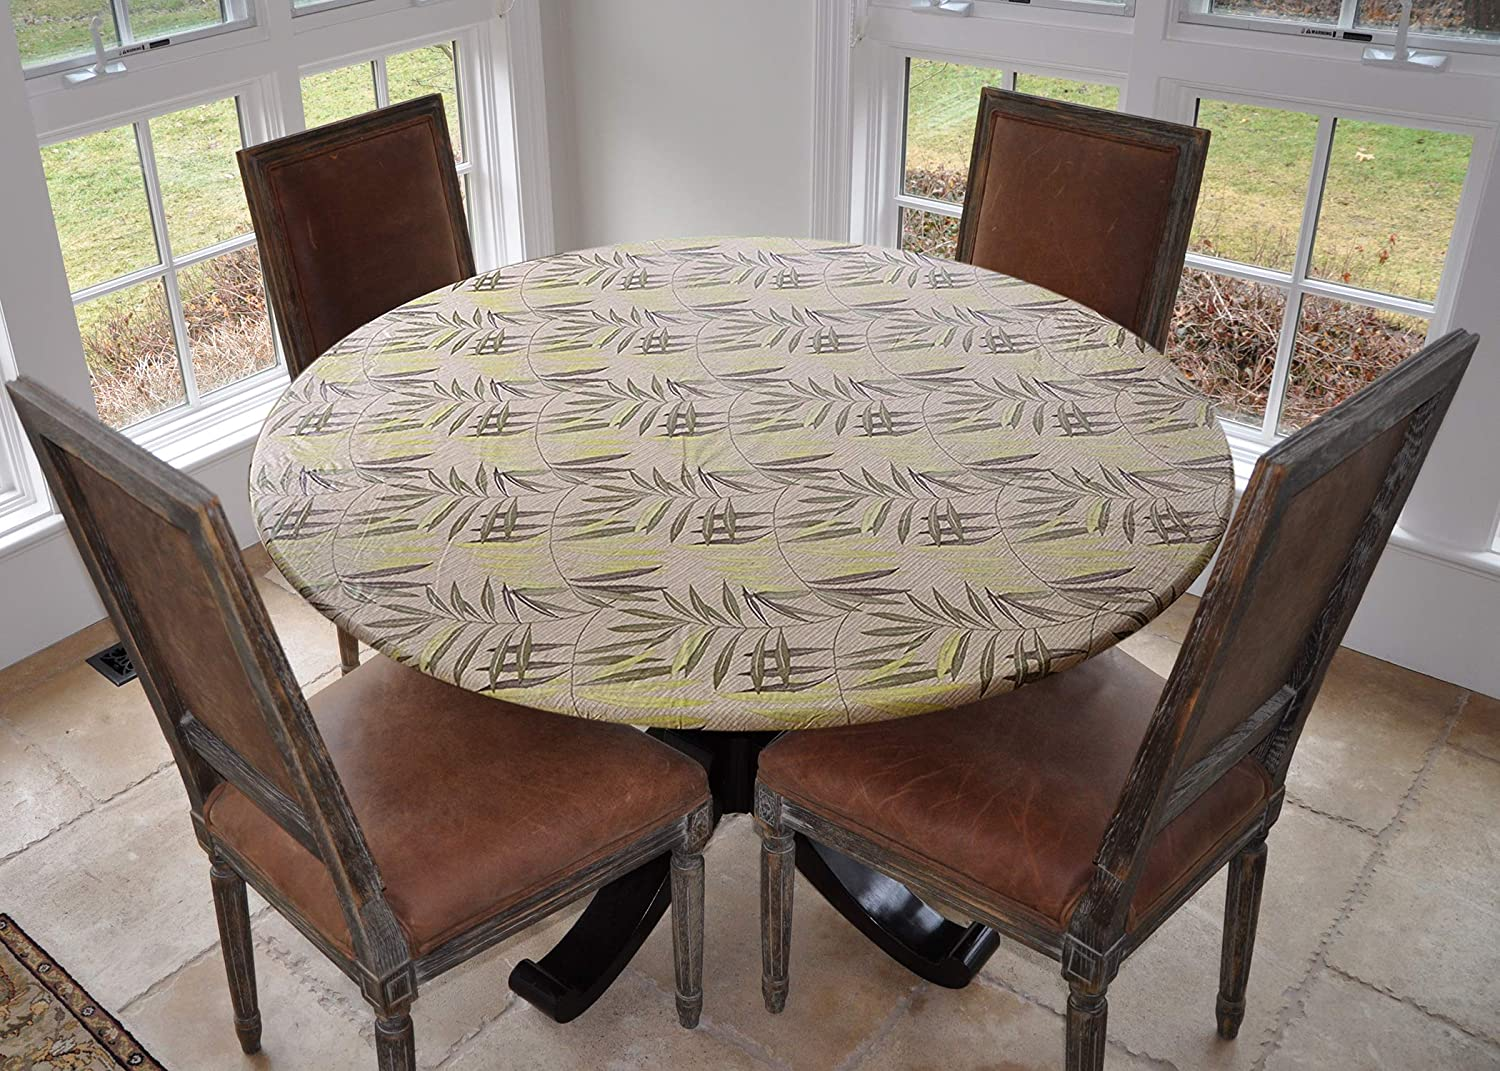 """Covers For The Home Deluxe Elastic Edged Flannel Backed Vinyl Fitted Table Cover - Fern Pattern - Large Round - Fits Tables up to 45"""" - 56"""" Diameter"""